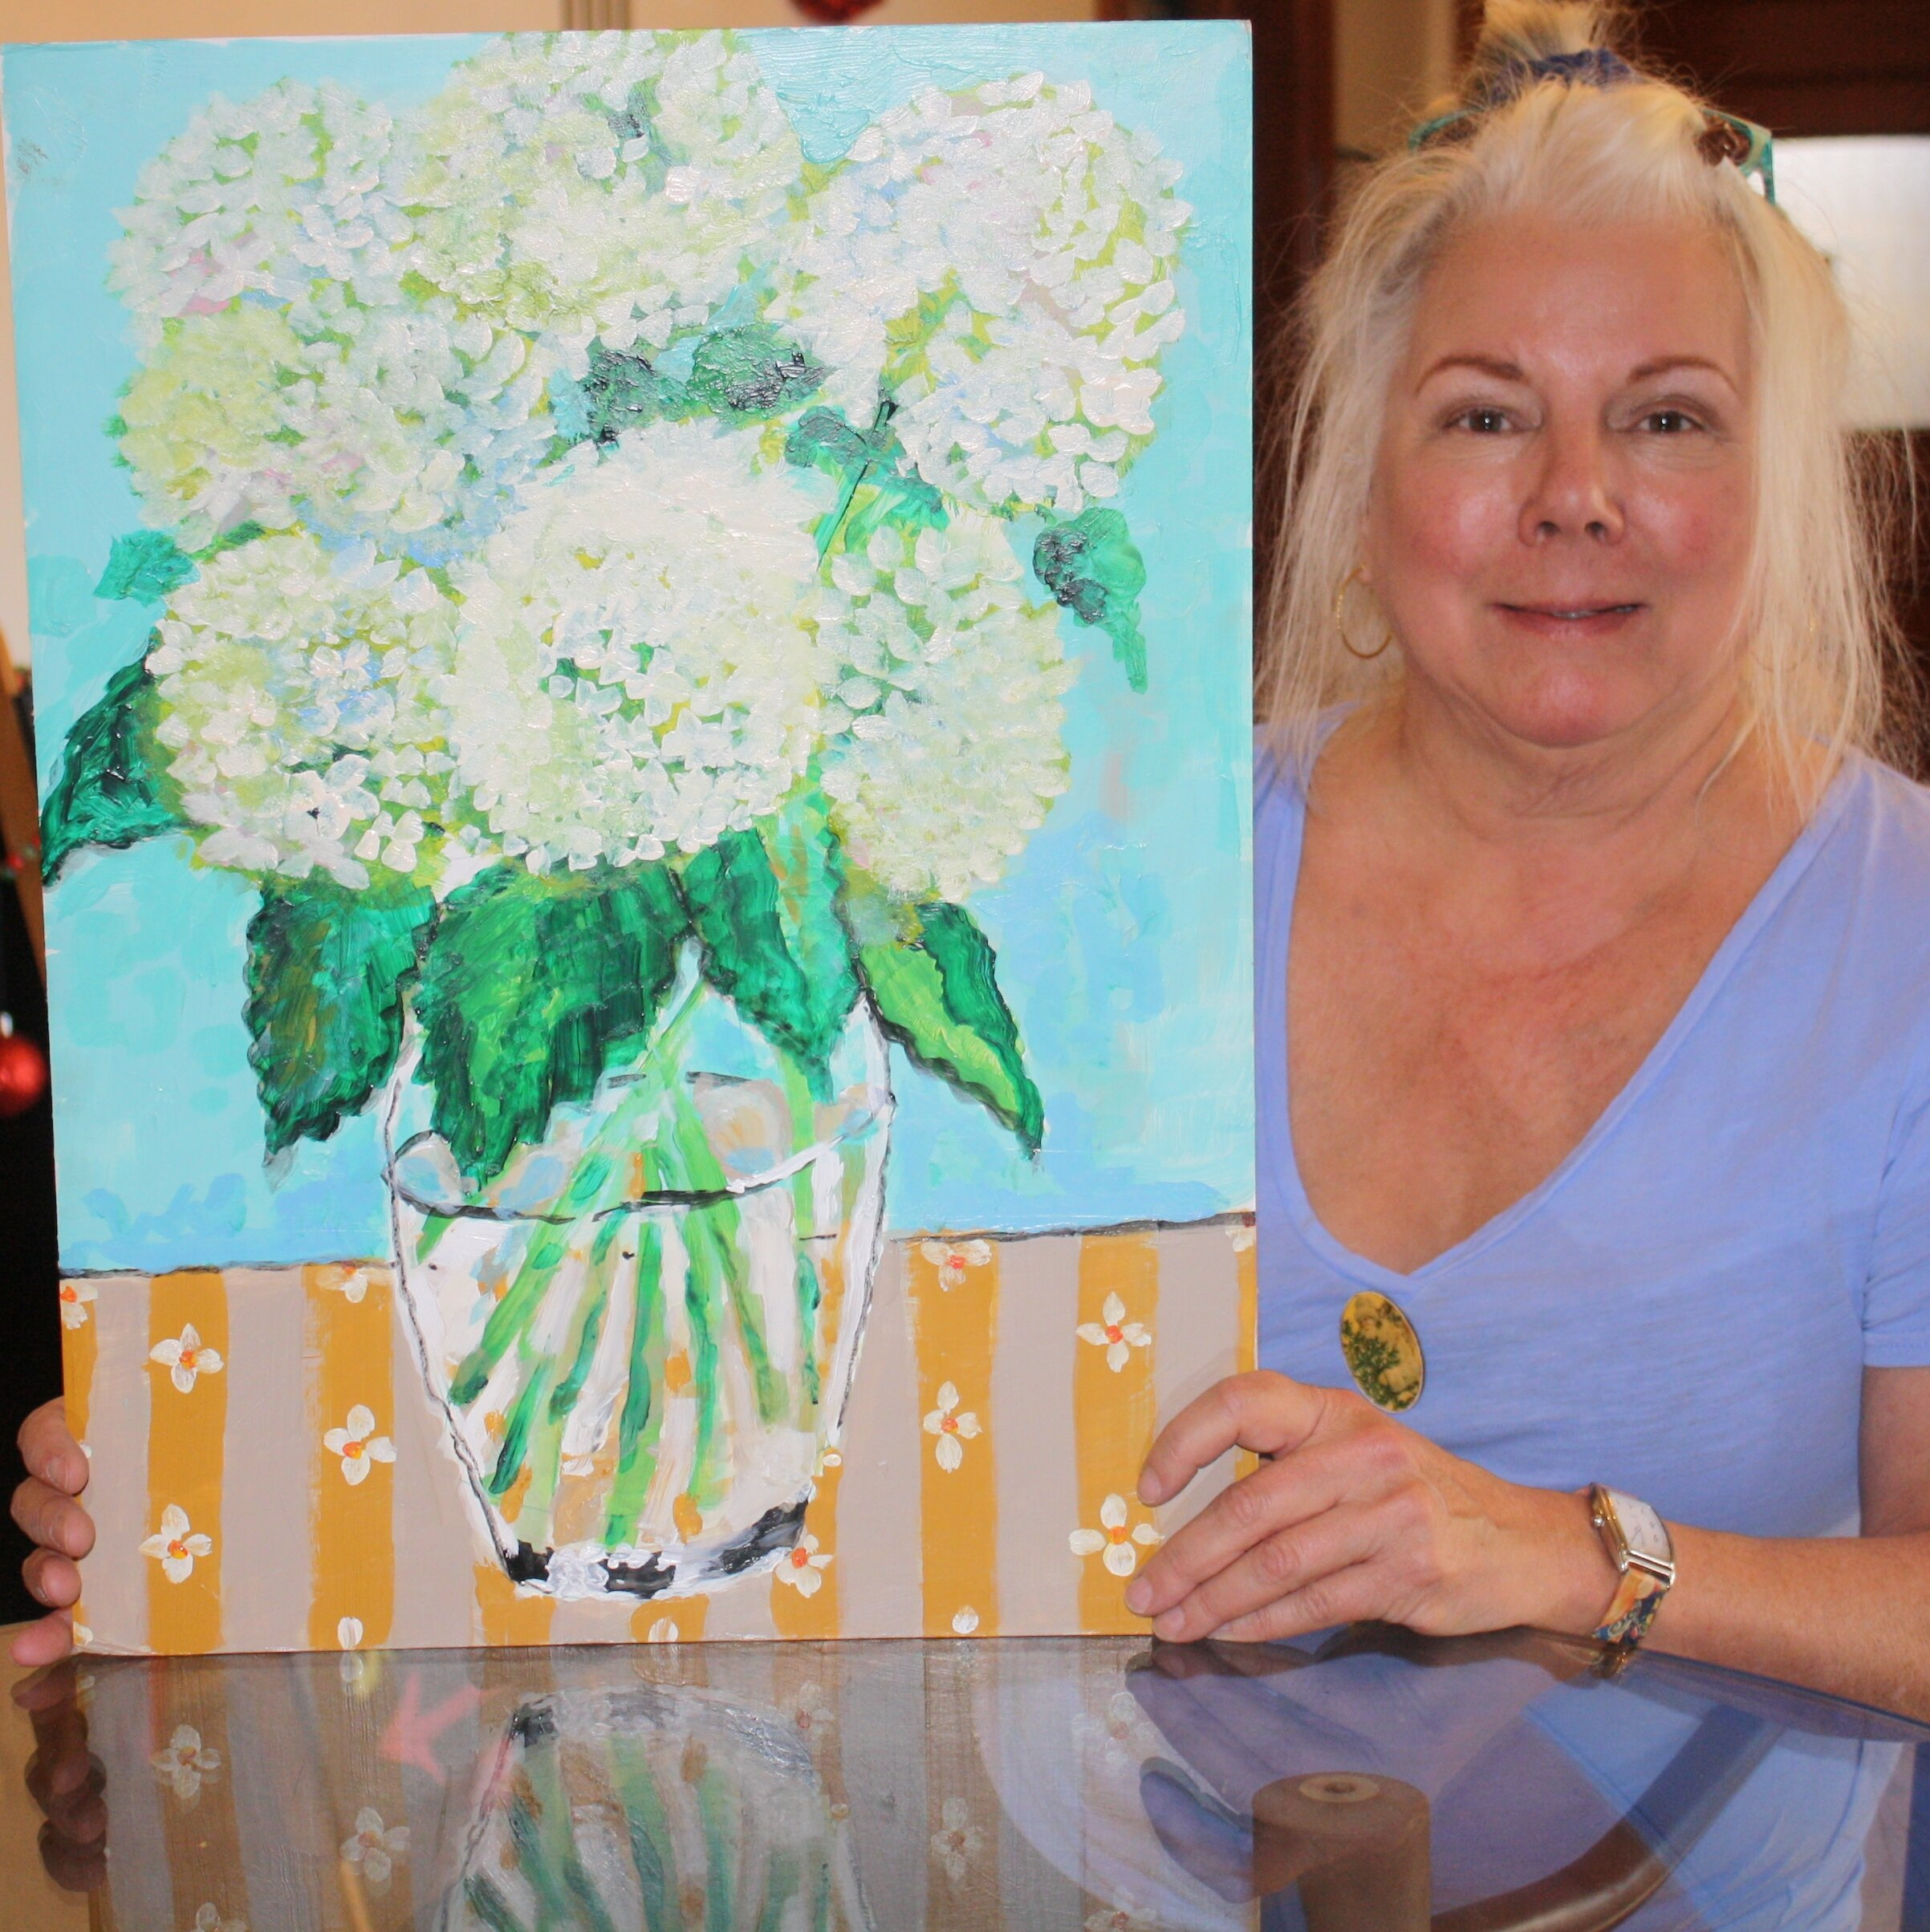 Local area artist Rebecca Andersen, uses various techniques and paints in creating magnificent masterpieces. With an emphasis on acrylic and watercolor painting, Andersen brings life and vibrancy to any focal point.